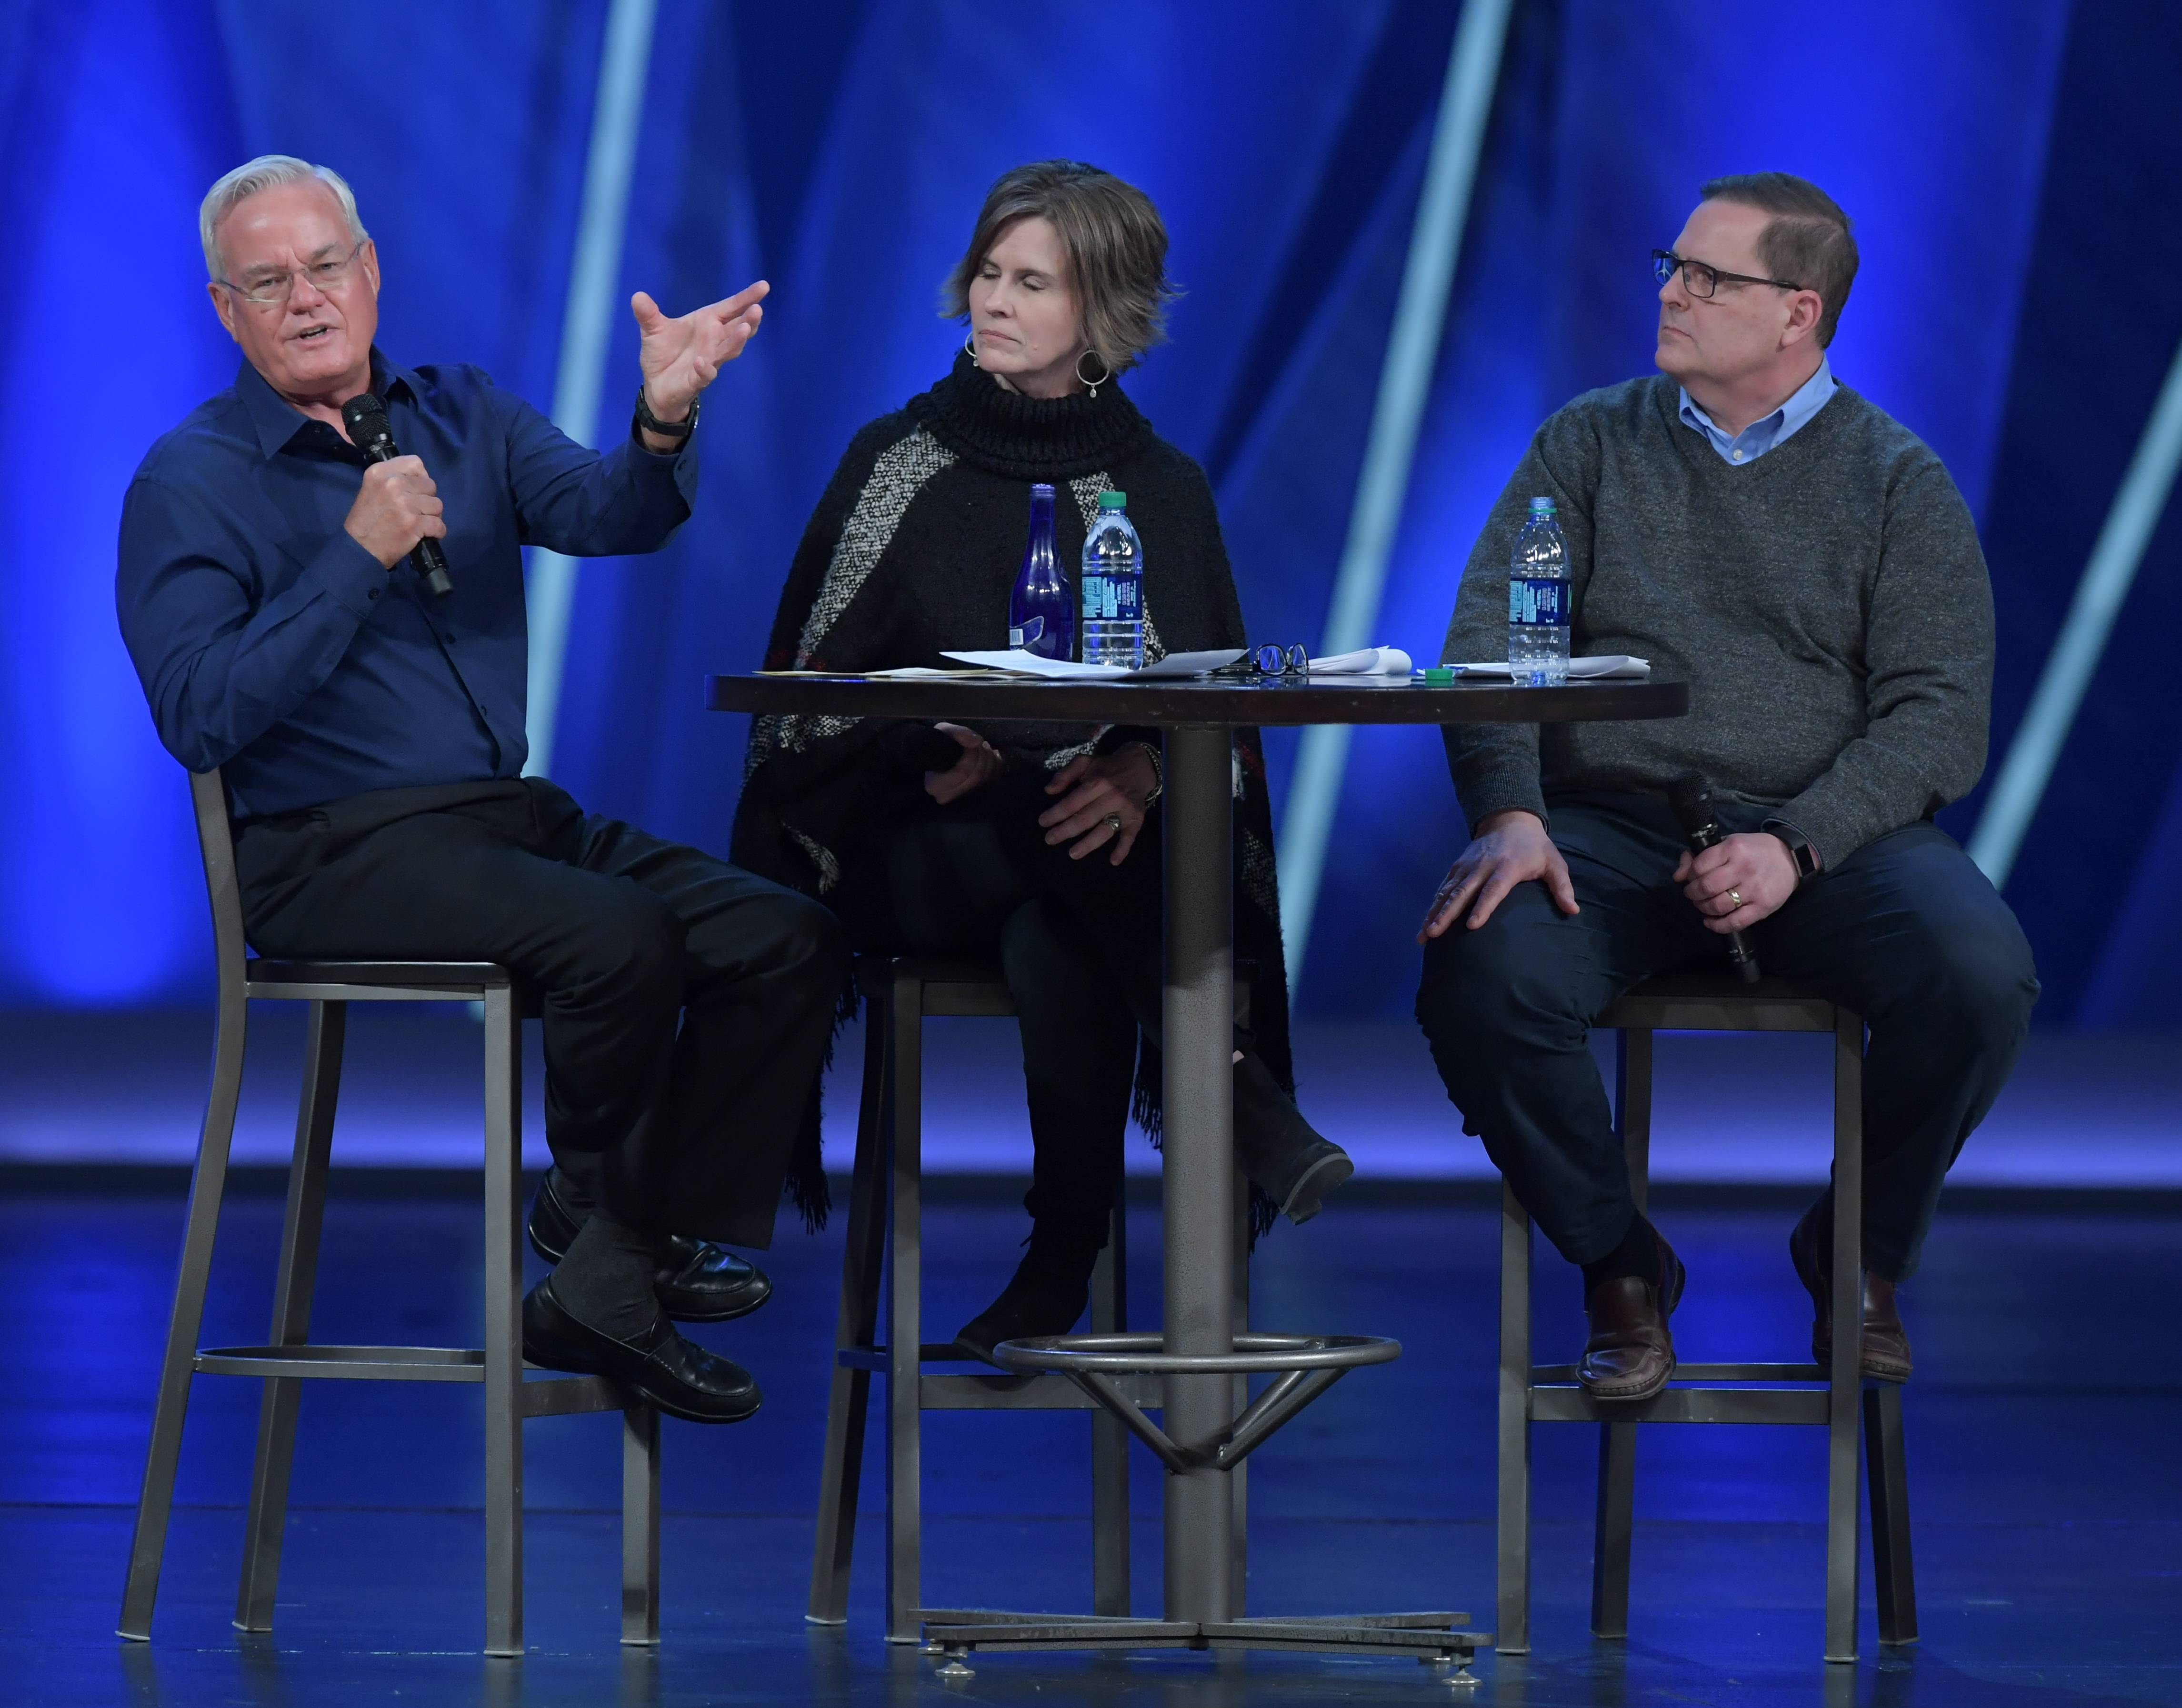 Willow Creek Senior Pastor Bill Hybels on Monday again denied allegations of misconduct.